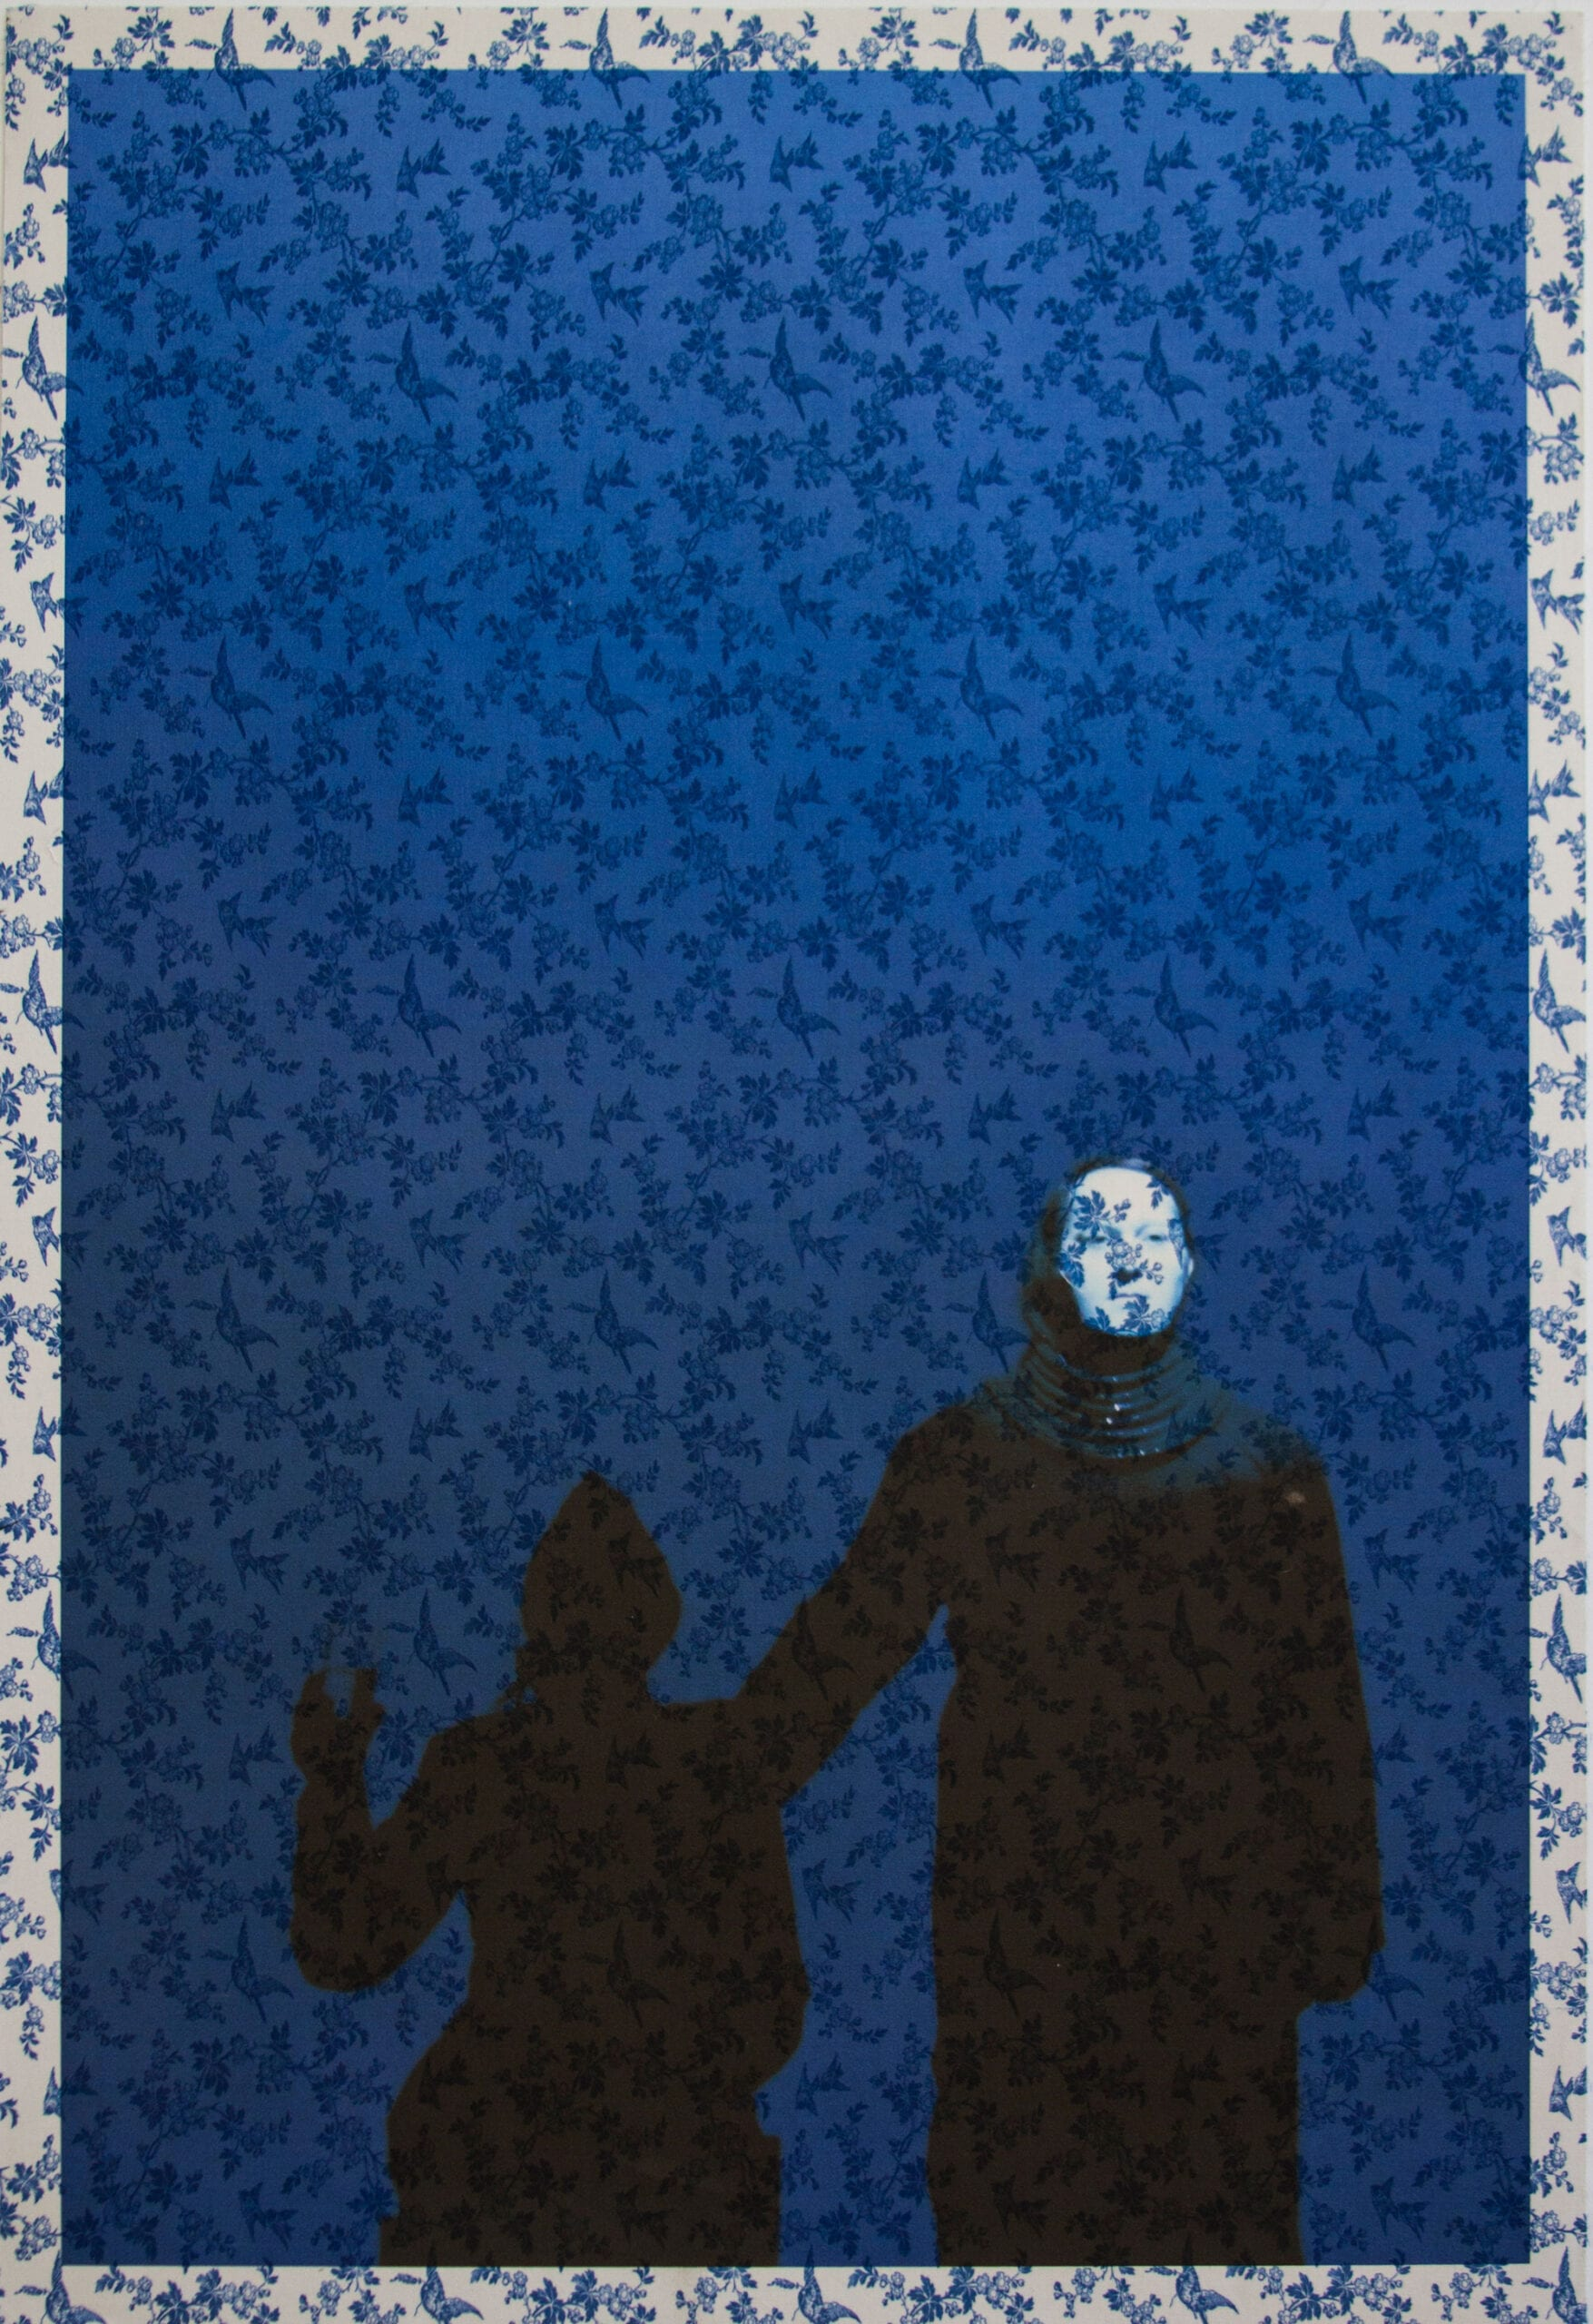 "Tim Hailand, Marina Abramovic and Antony on stage Manchester (on Bluebird toile), digital pigment print on patterned toile de Jouy fabric, 38"" x 26"", unique print, 2012"